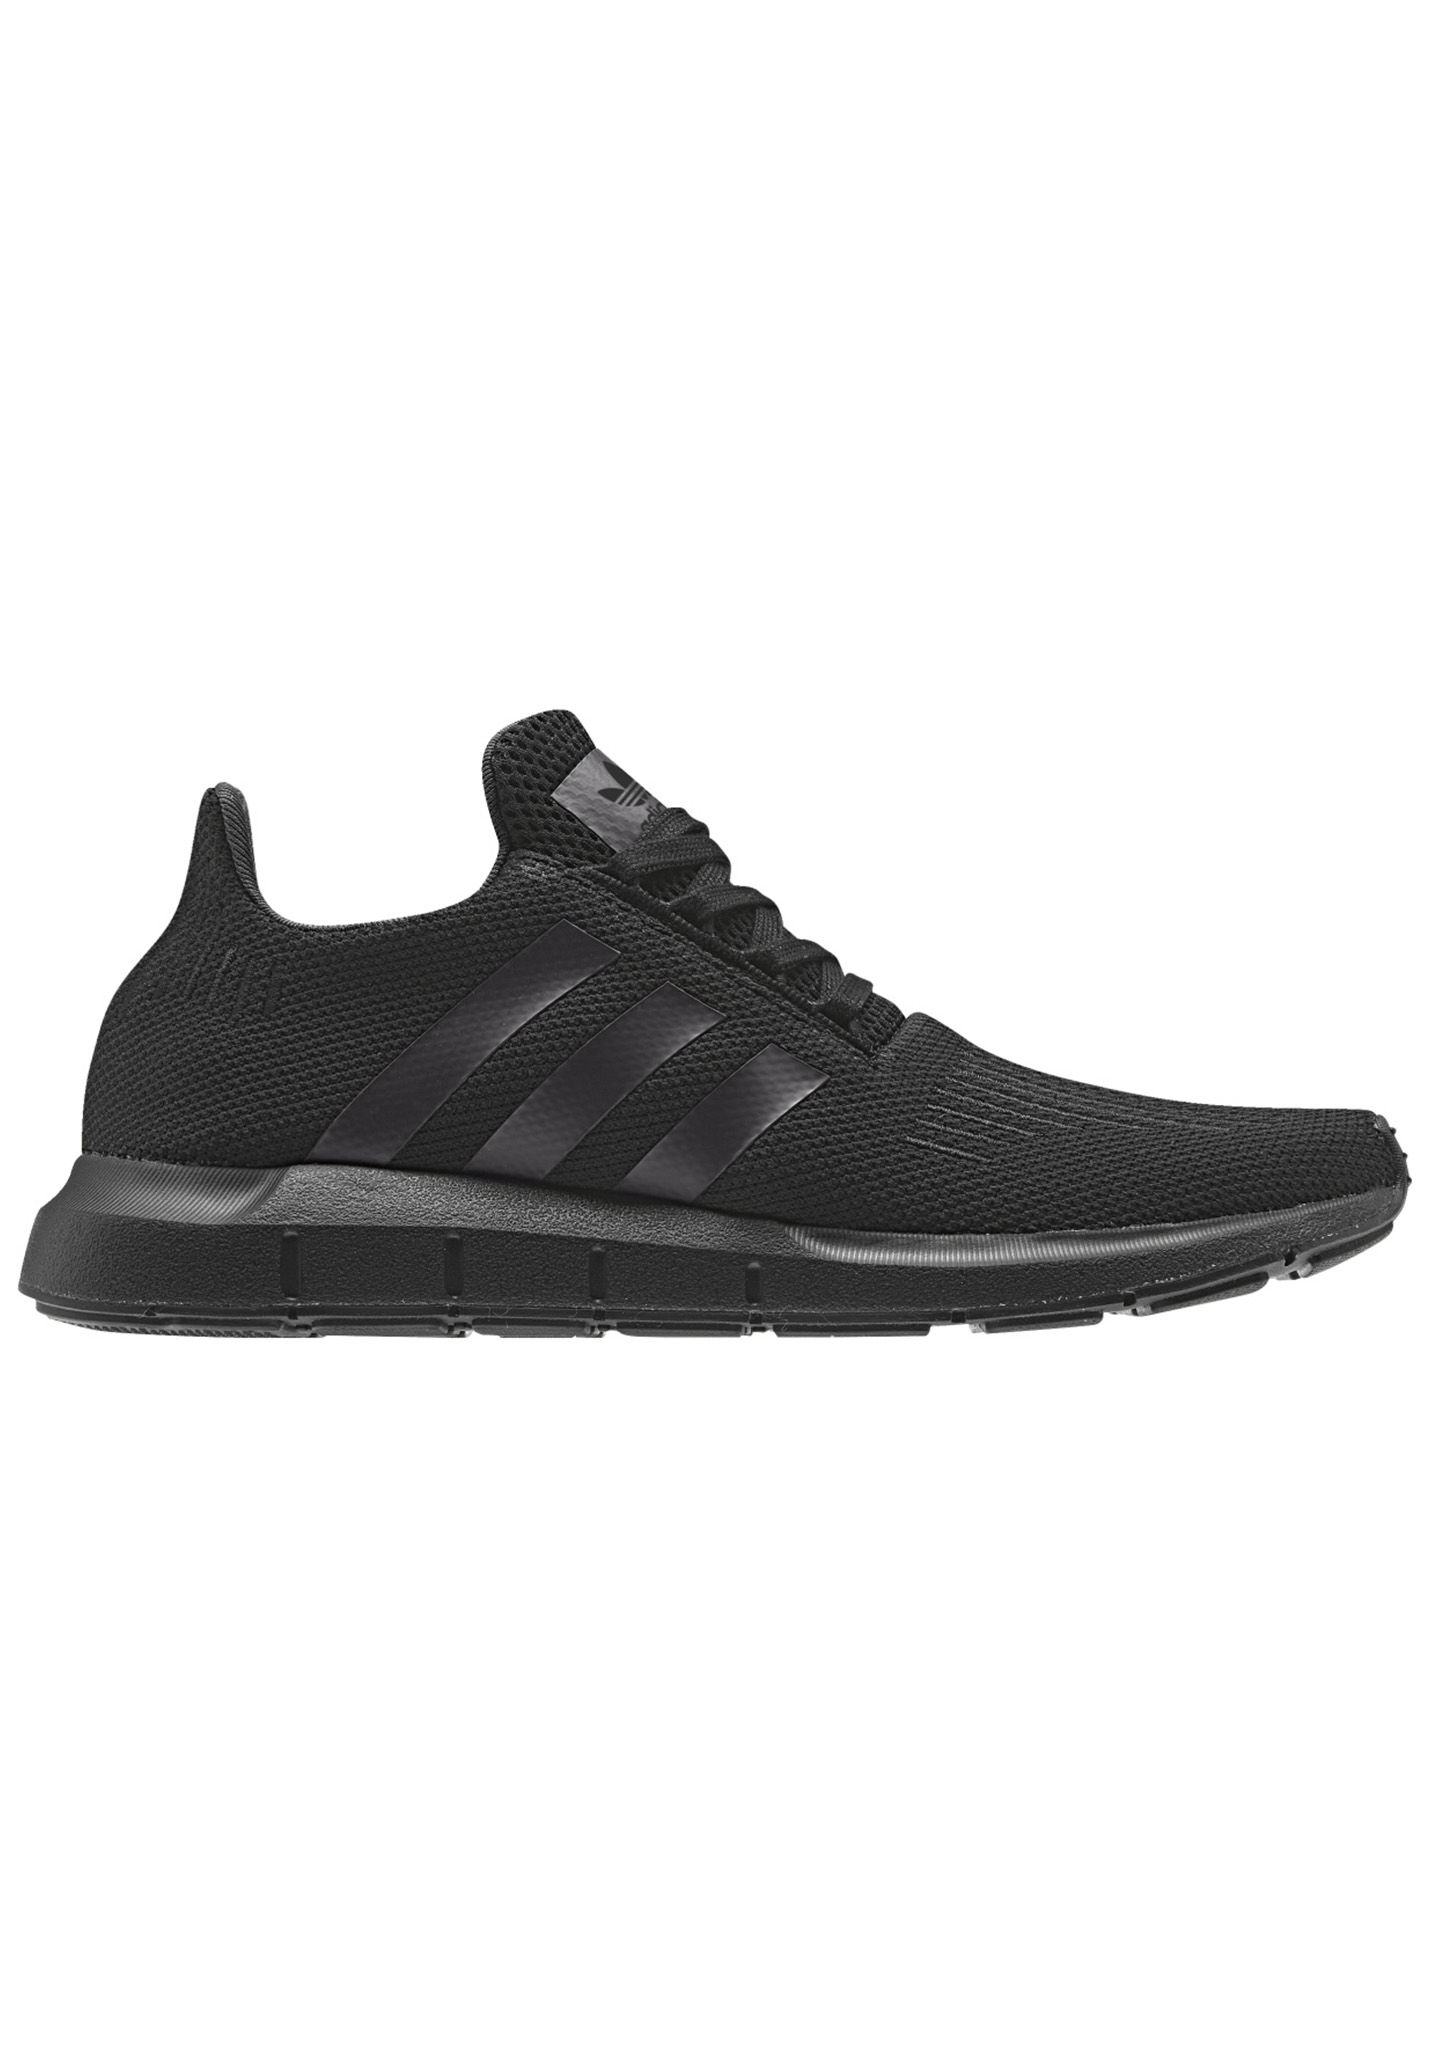 aa879a8d212 ADIDAS ORIGINALS Swift Run - Baskets pour Homme - Noir - Planet Sports